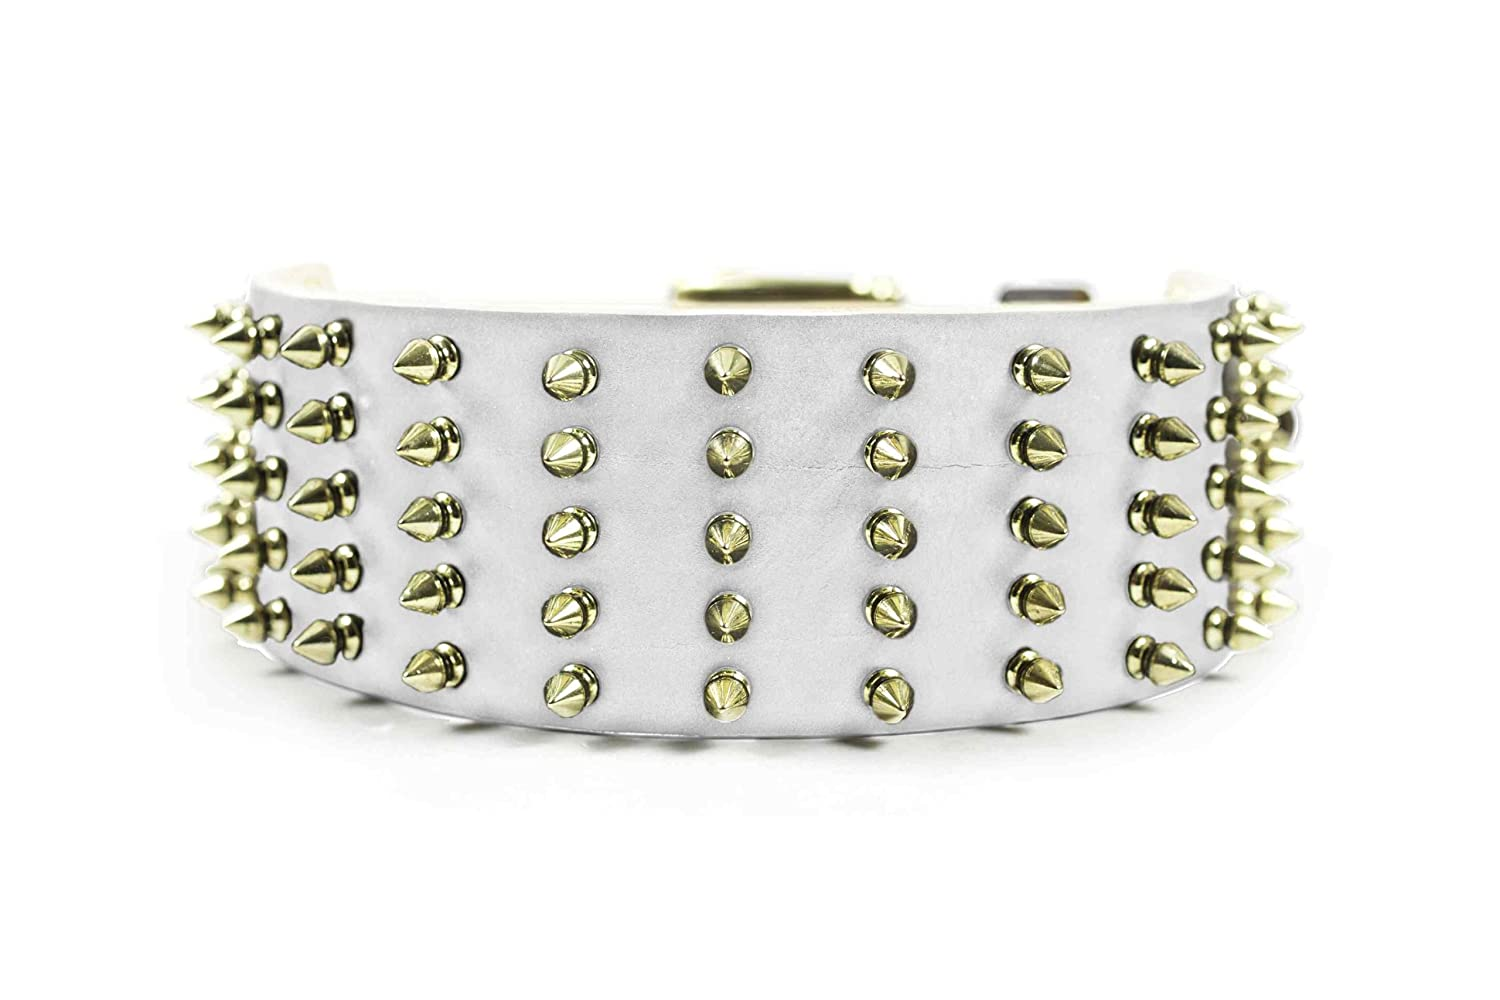 Dean & Tyler Leather Dog Collar  WIDE SPIKE  With Brass Spikes Size 20 Inch By 2 3 4 Inch Width White. Will Fit Neck Size 18 Inches to 22 Inches.